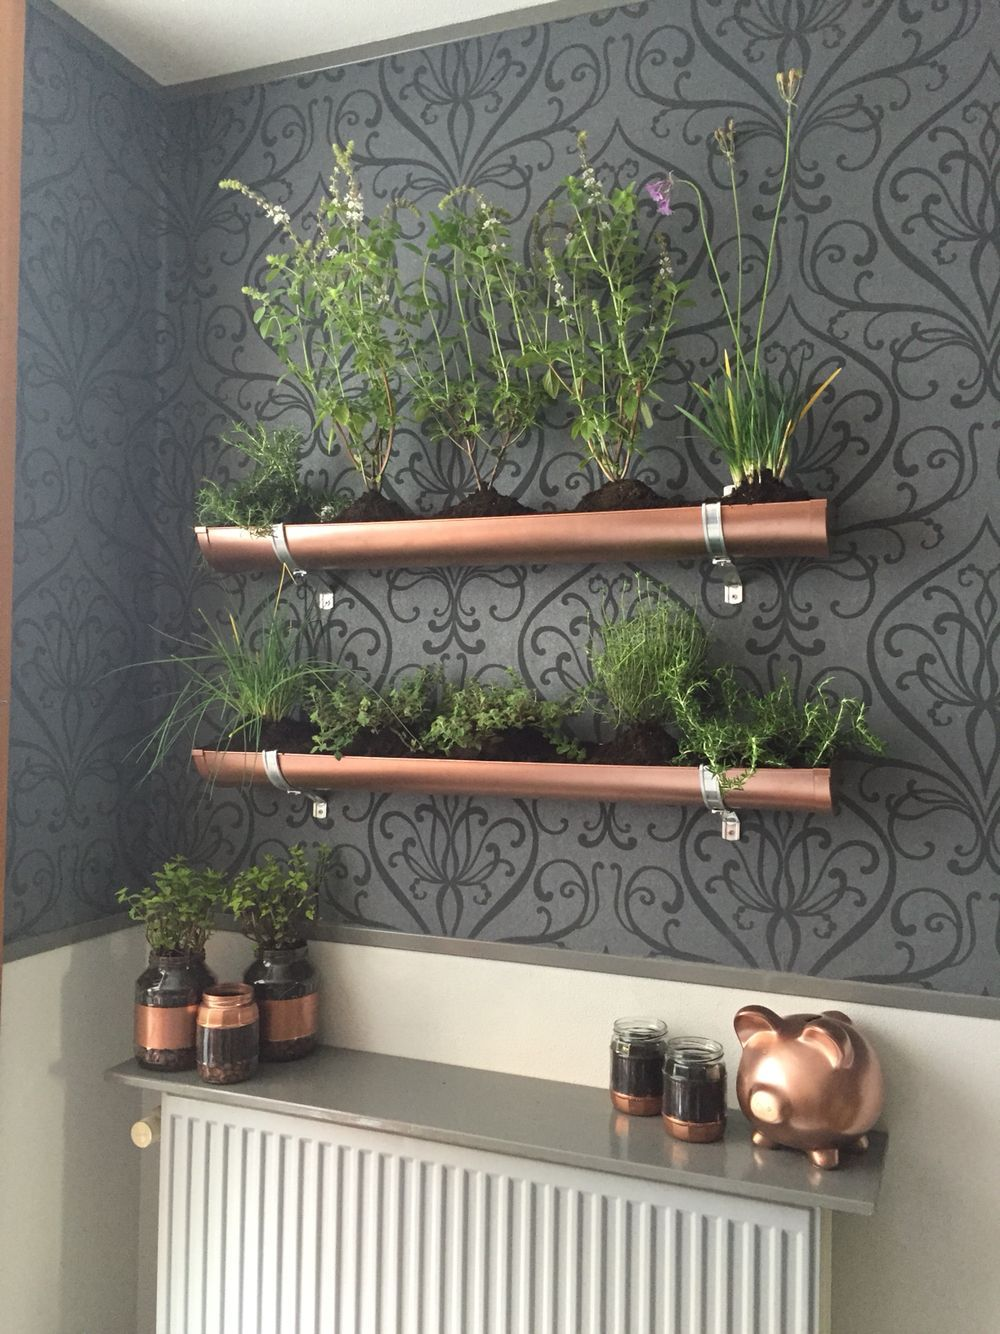 Indoor Vertical Herb Garden Pvc Gutter And Copper Spray Paint To Give It A Steampunk Ish Look Old Pickle Jars Equals Cool Planters